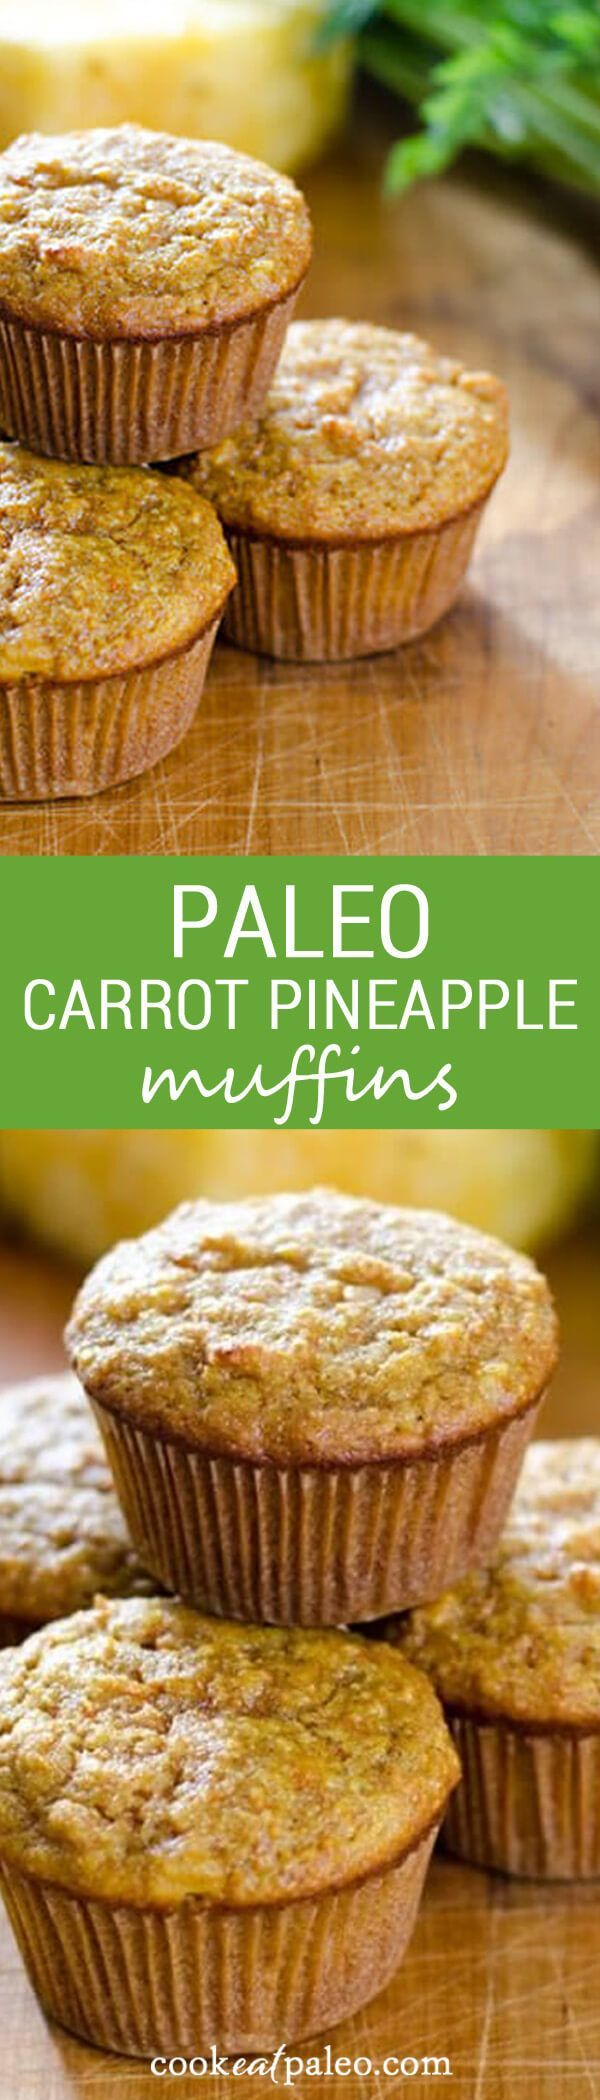 These carrot pineapple paleo muffins are perfect for breakfast or a quick snack. And they are gluten-free, grain-free and refined sugar-free.